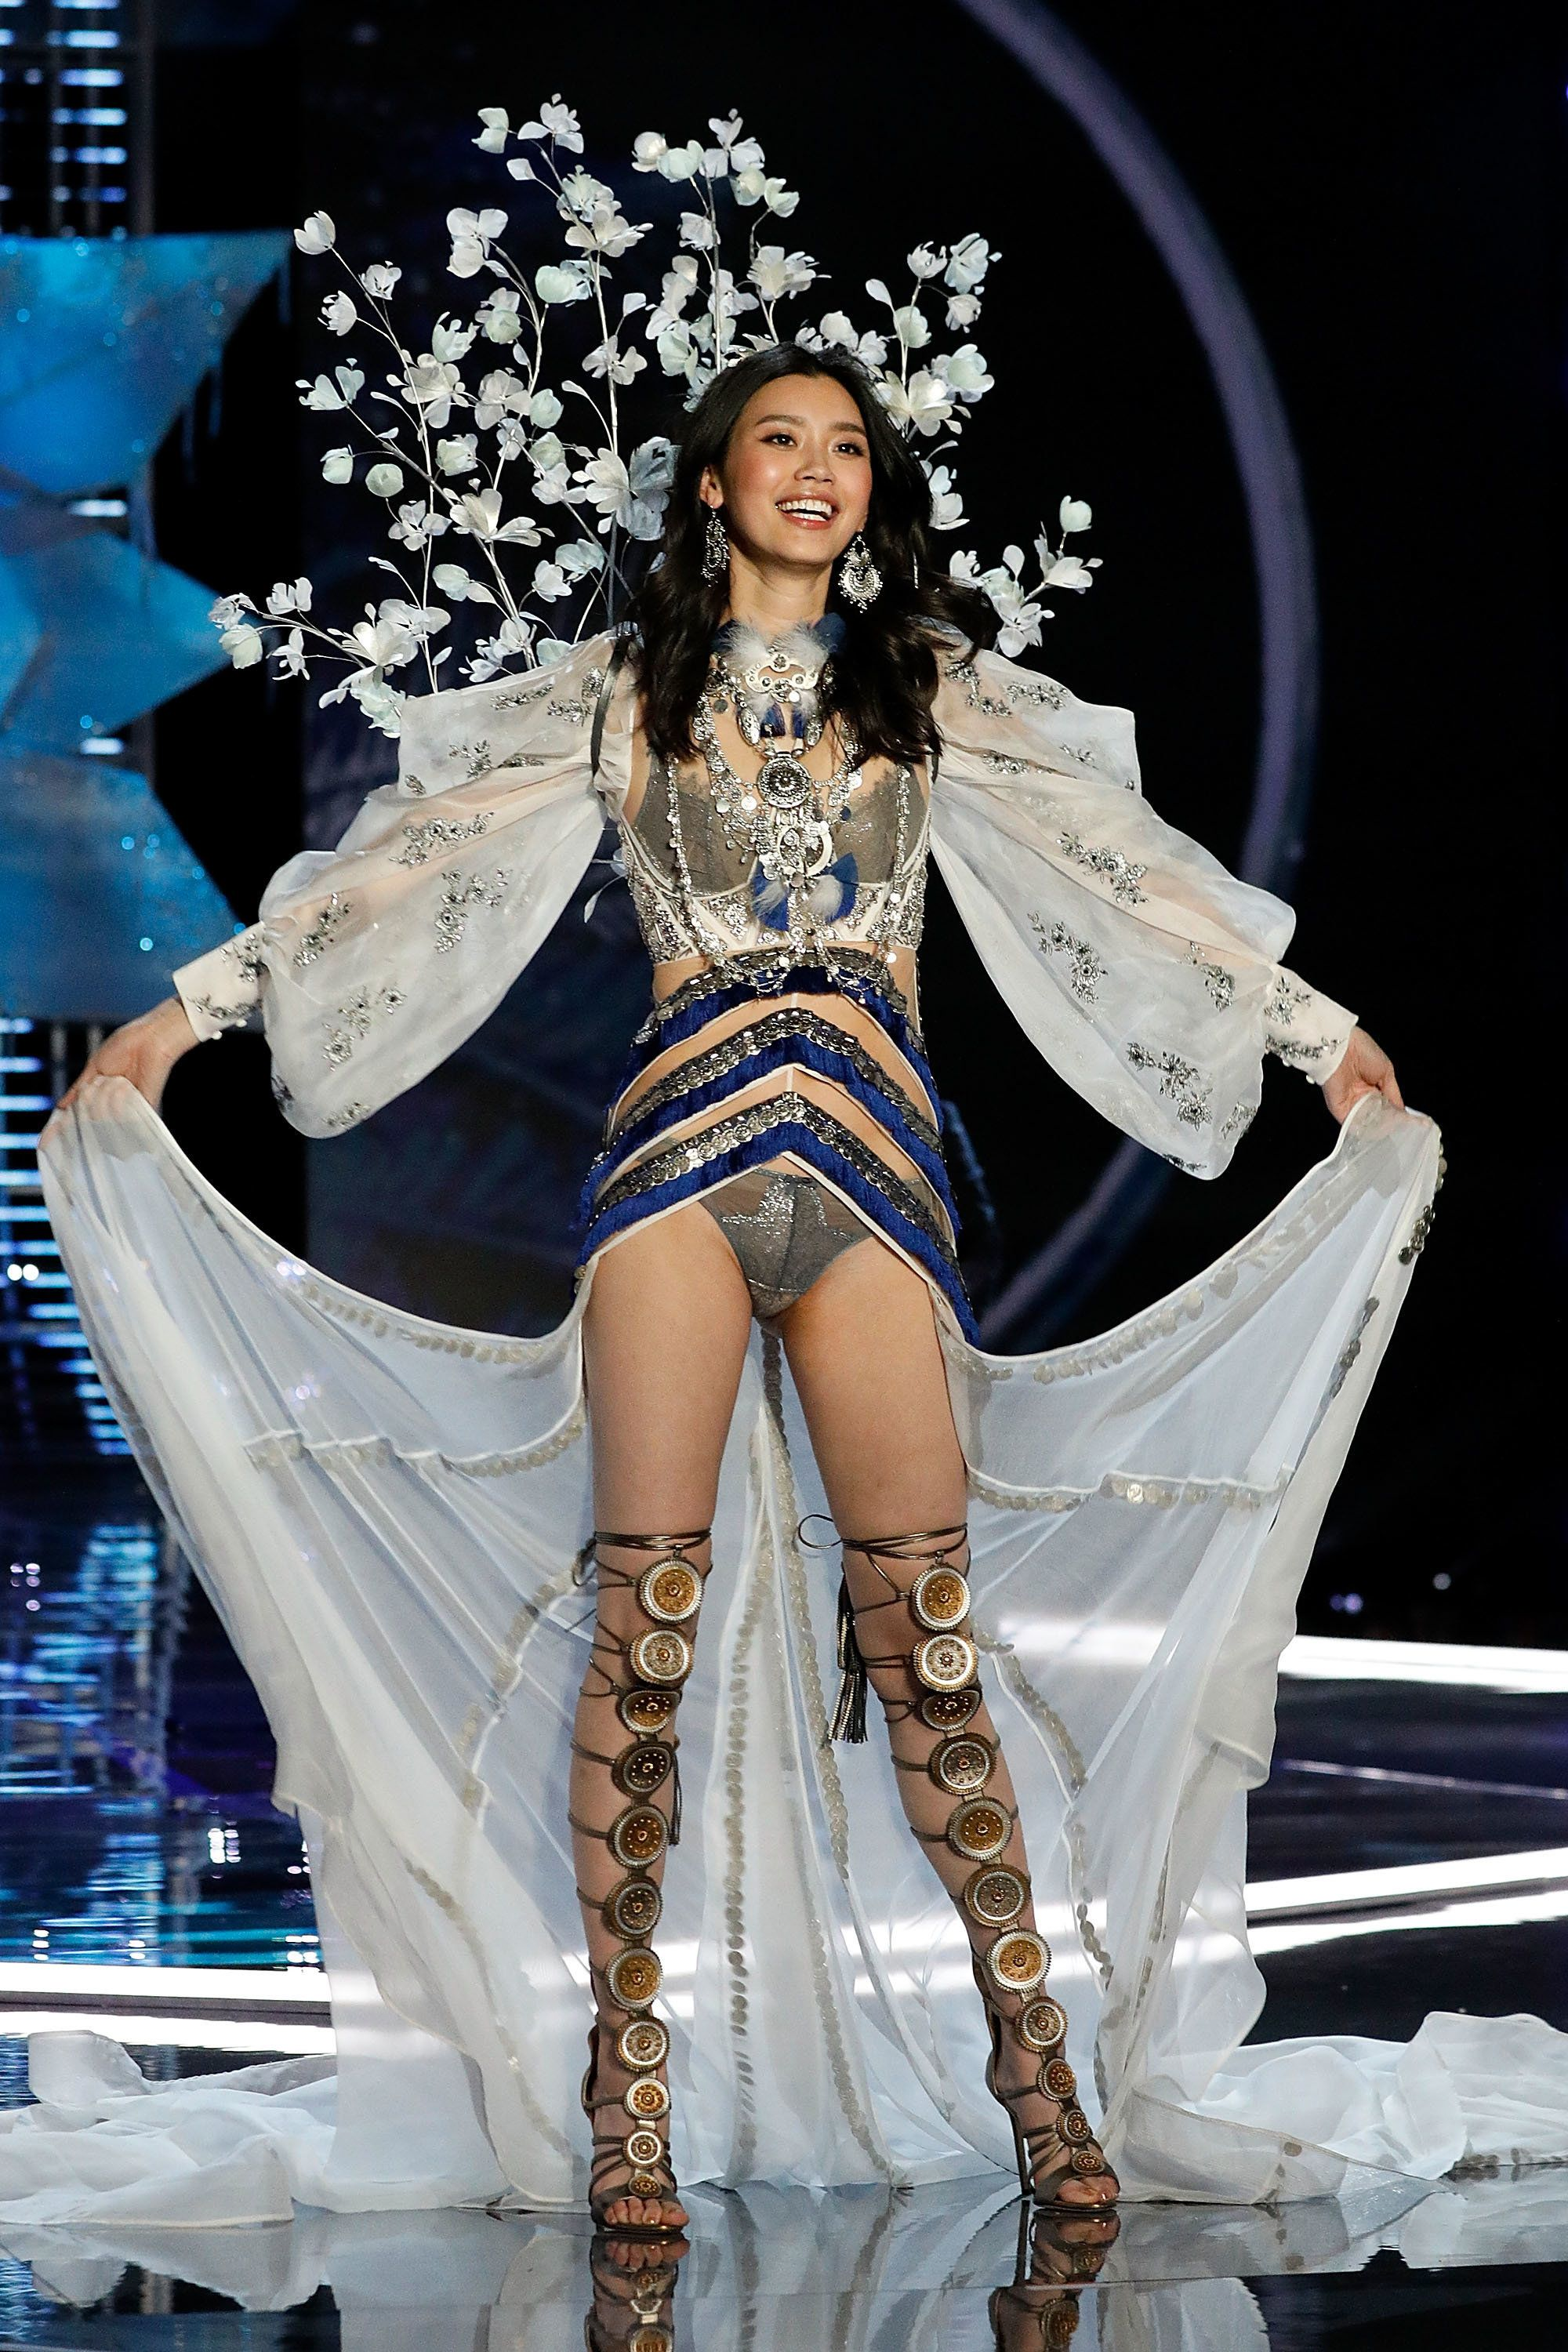 SHANGHAI, CHINA - NOVEMBER 20:  Ming Xi walks the runway during the 2017 Victoria's Secret Fashion Show at Mercedes-Benz Arena on November 20, 2017 in Shanghai, China.  (Photo by Taylor Hill/WireImage)